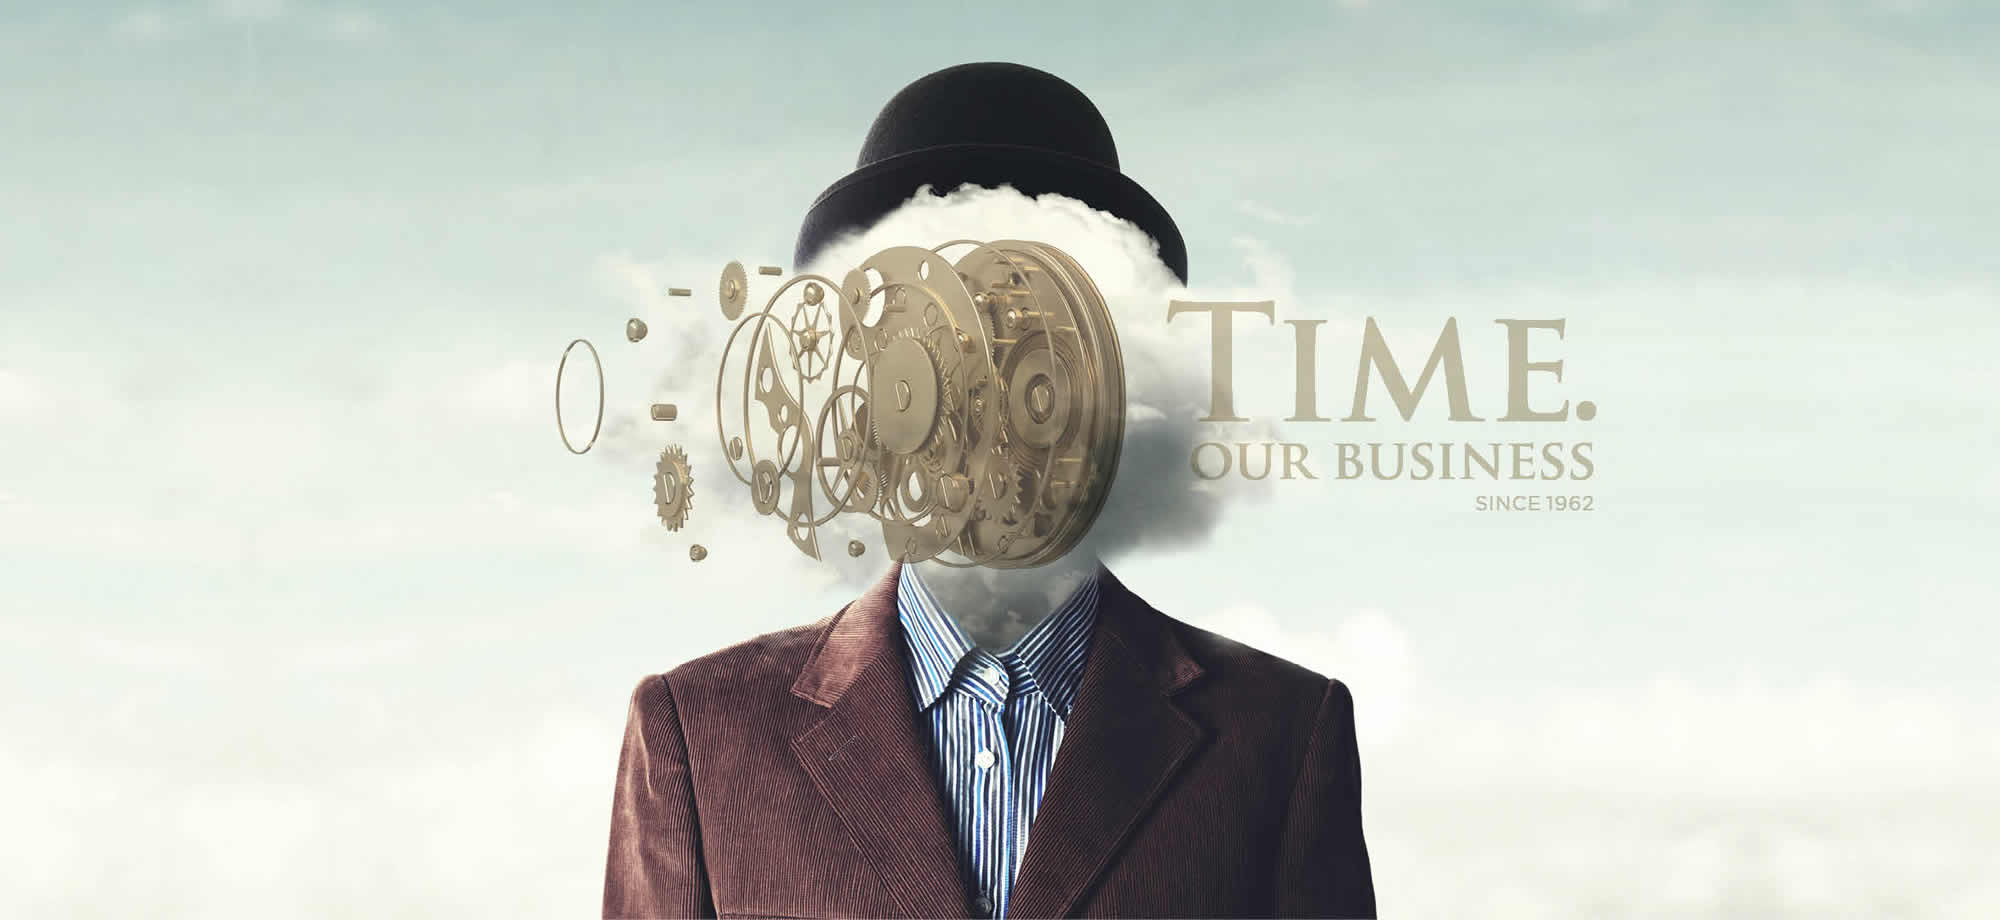 TenSen Jewelers | Time. Our Business